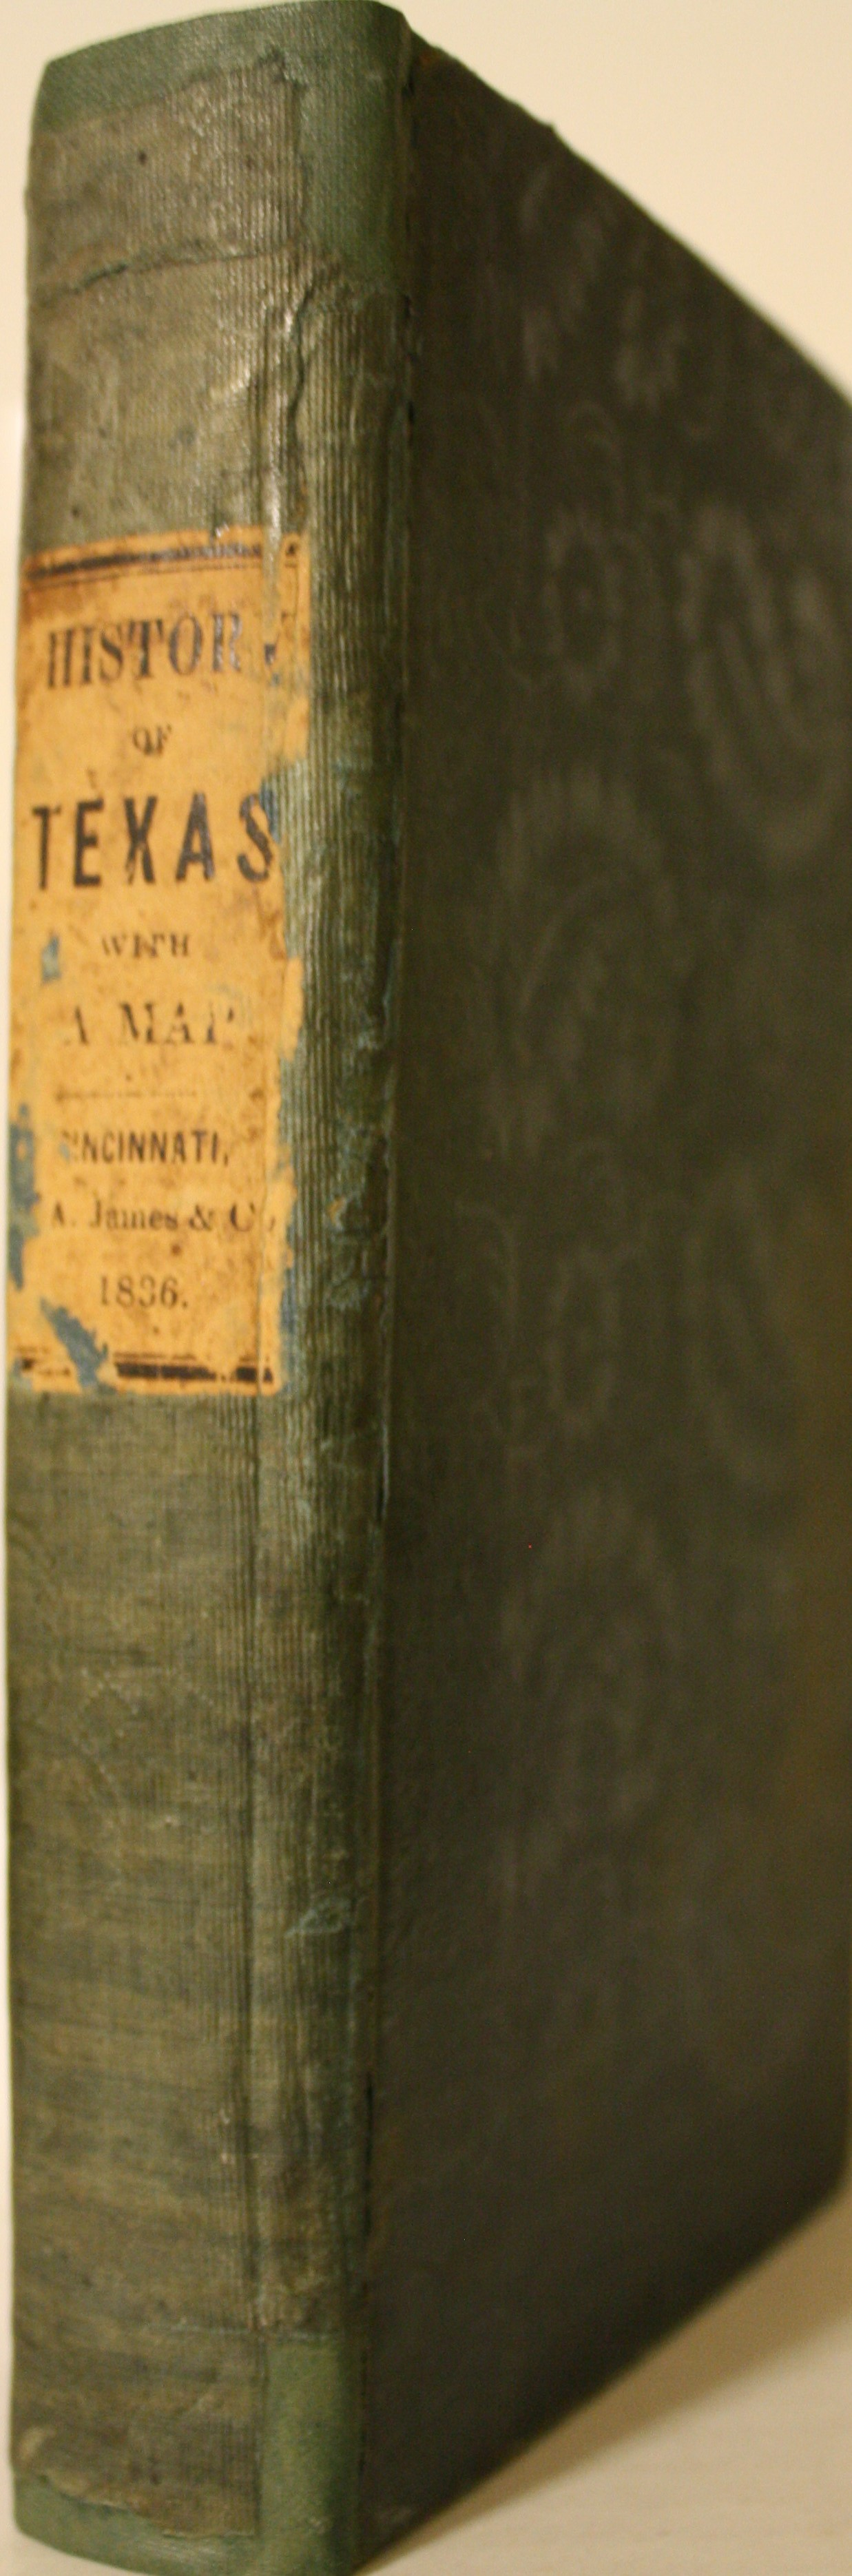 Image for The History of Texas; or, The Emigrant's, Farmer's, and Politician's Guide to the Character, Climate, Soil and productions of That Country; Geographically Arranged From Personal Observation and Experience by David B. Edward.